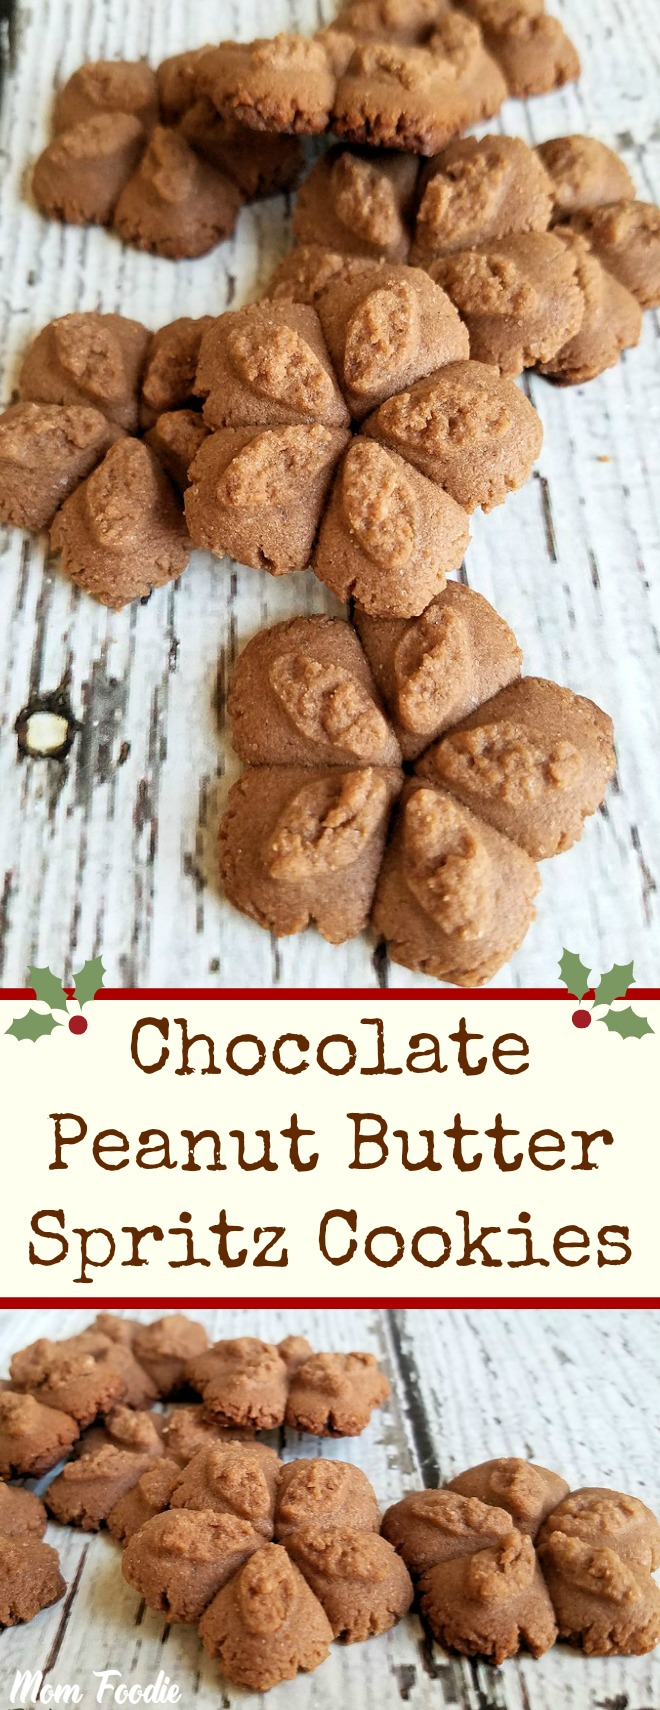 Chocolate Peanut Butter Spritz Cookies Recipe